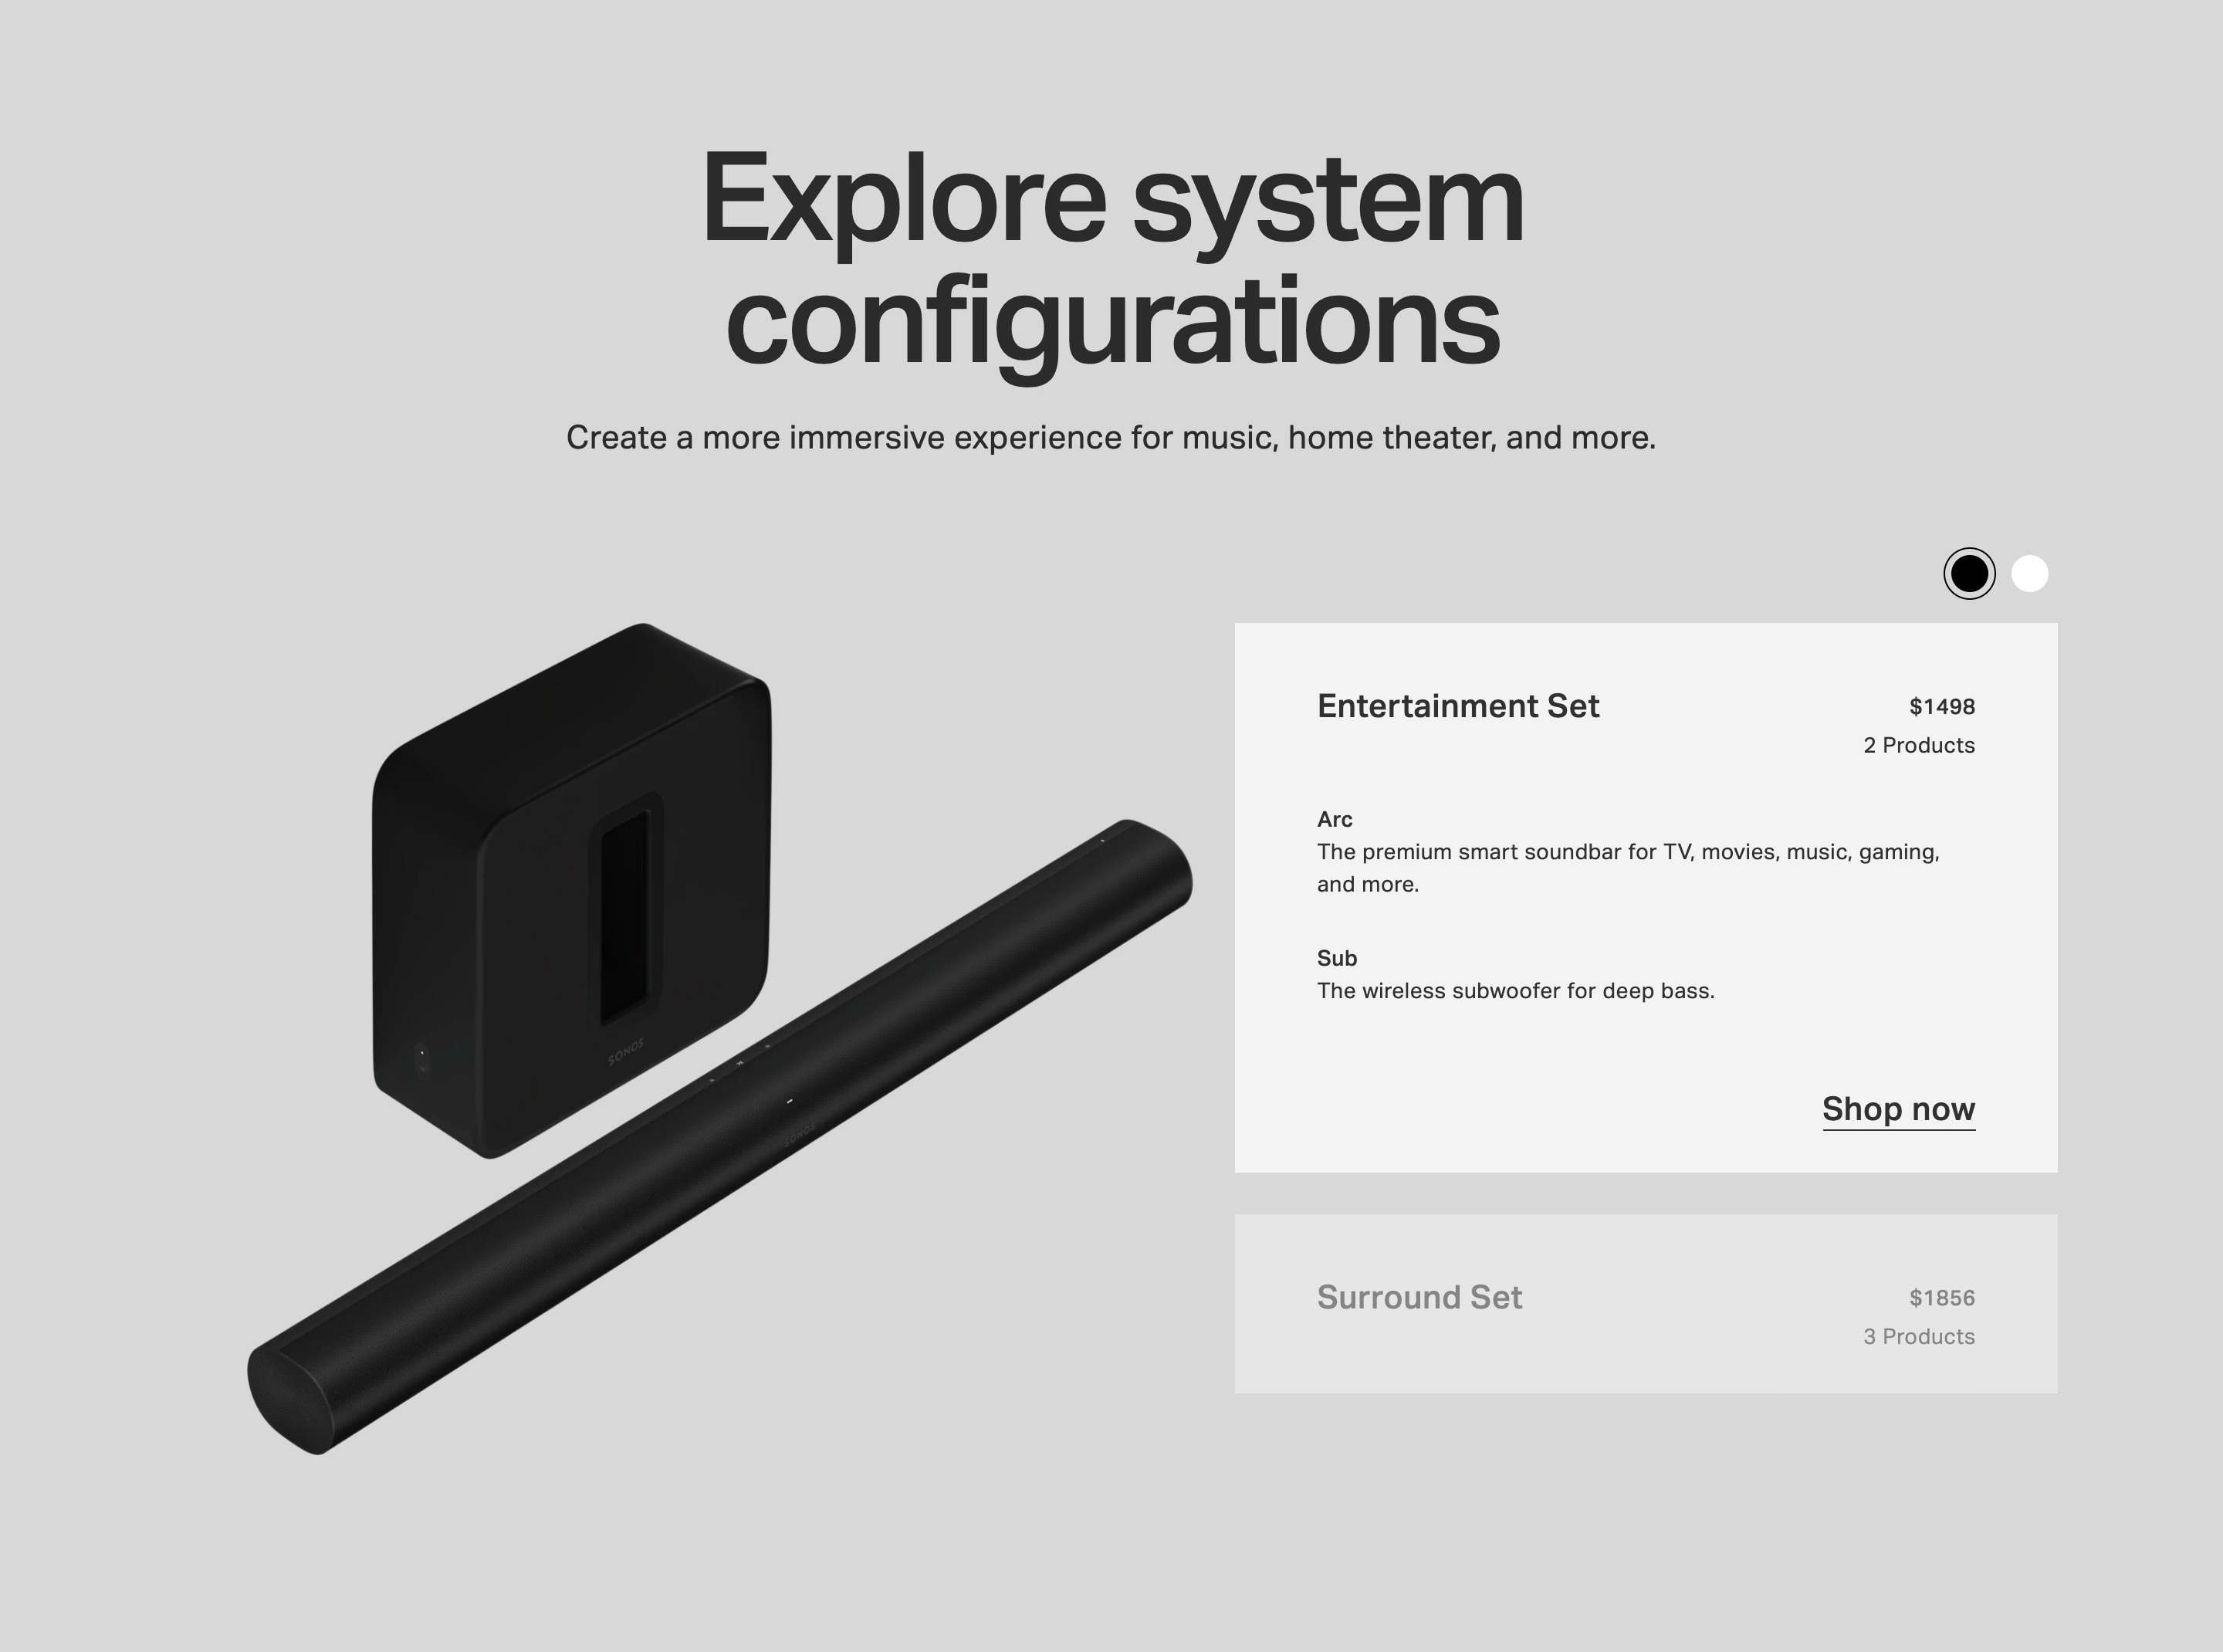 Shopping Product Configurations